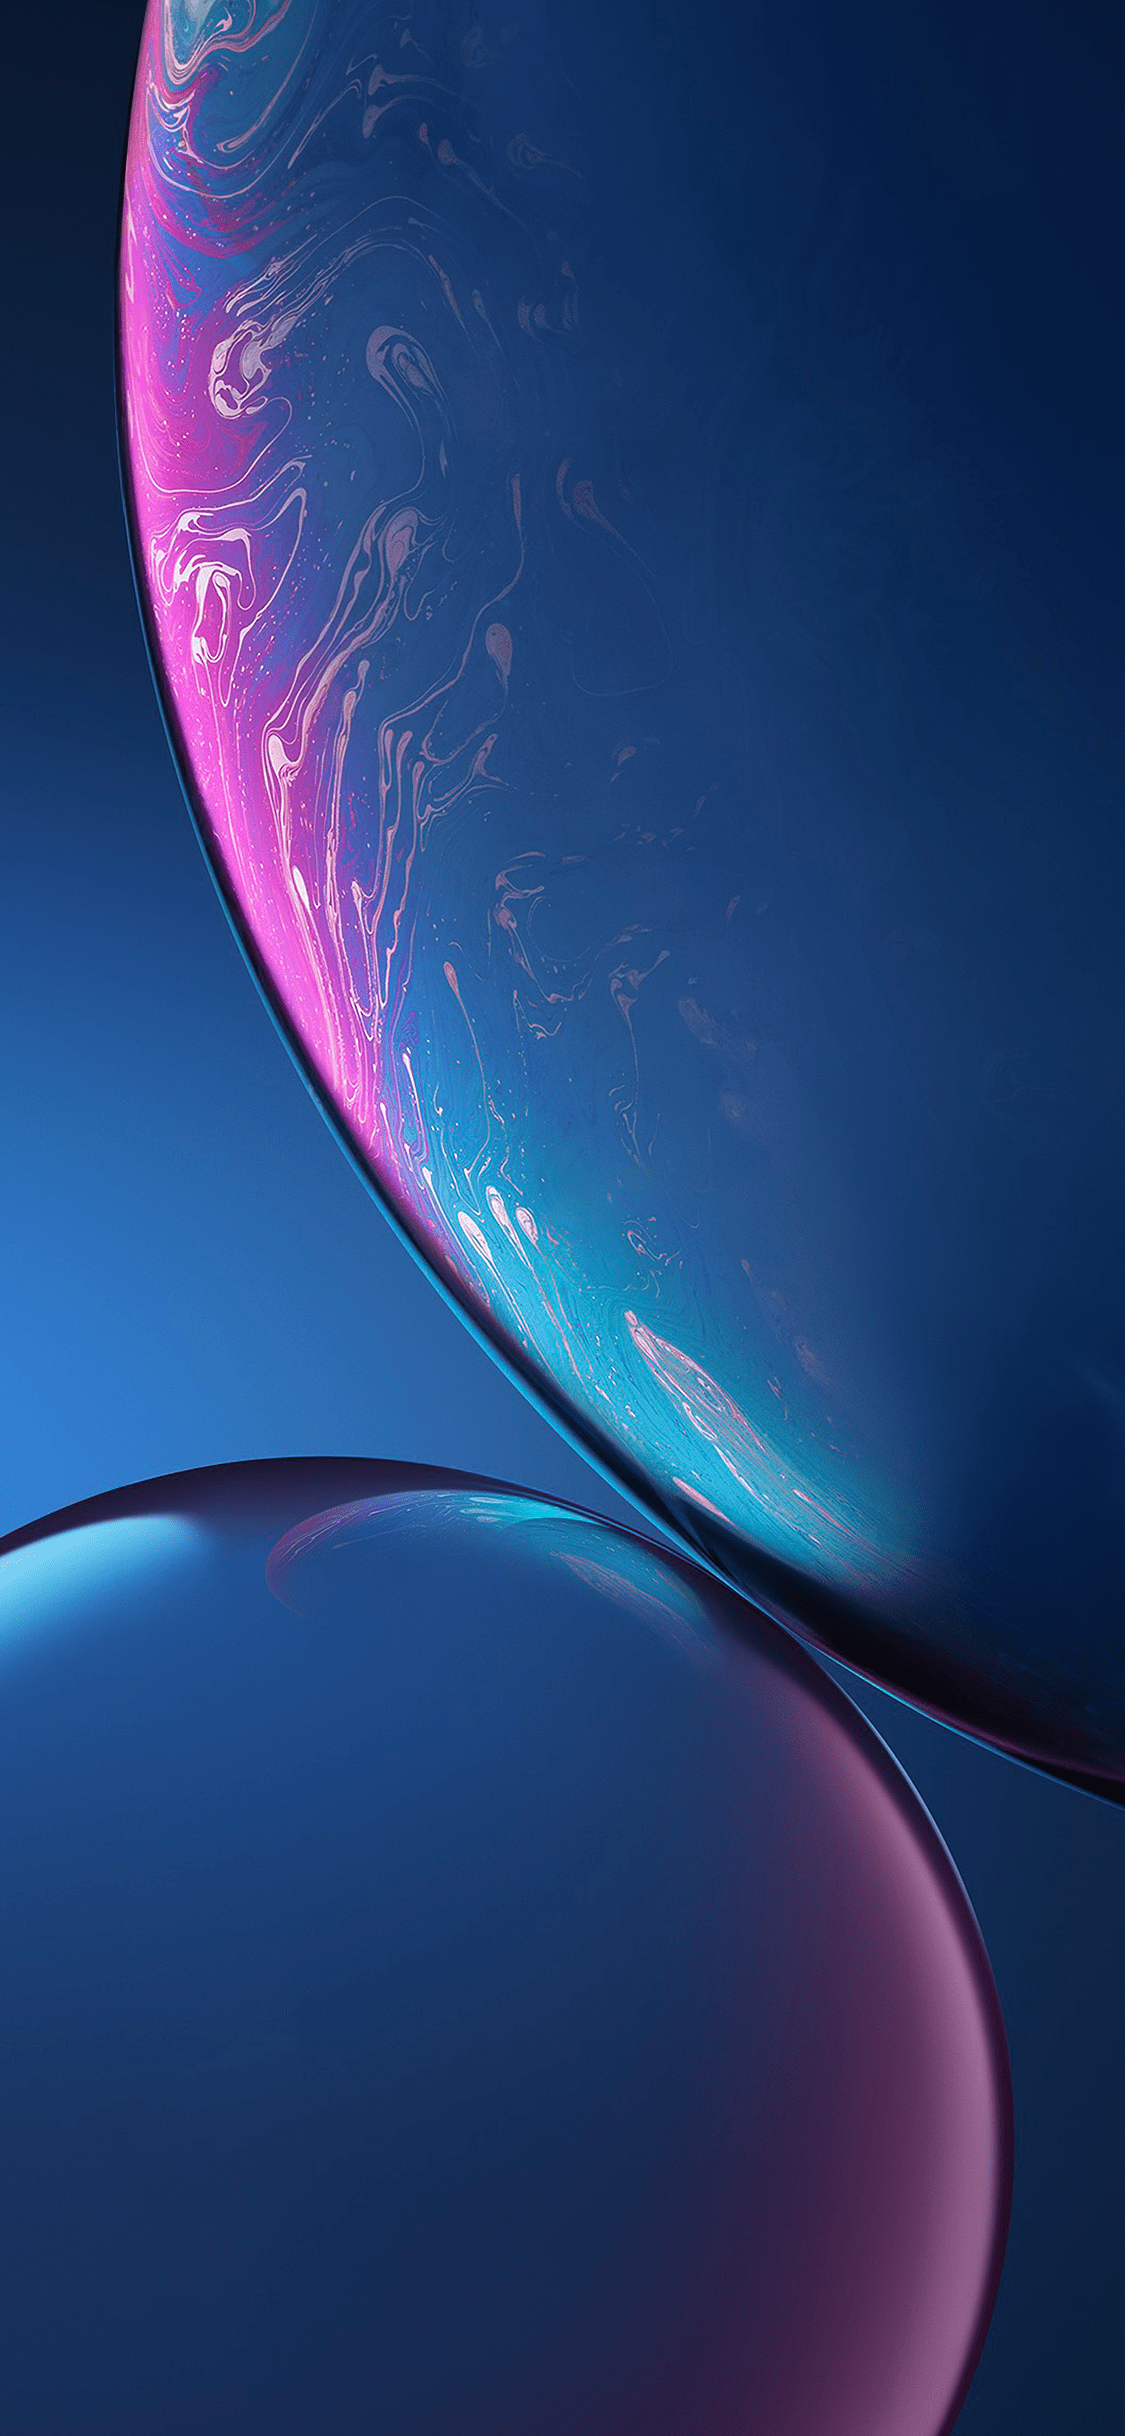 Iphone X Fornite Wallpapers Ios 12 Wallpapers Wallpaper For Iphone X 8 7 6 Free